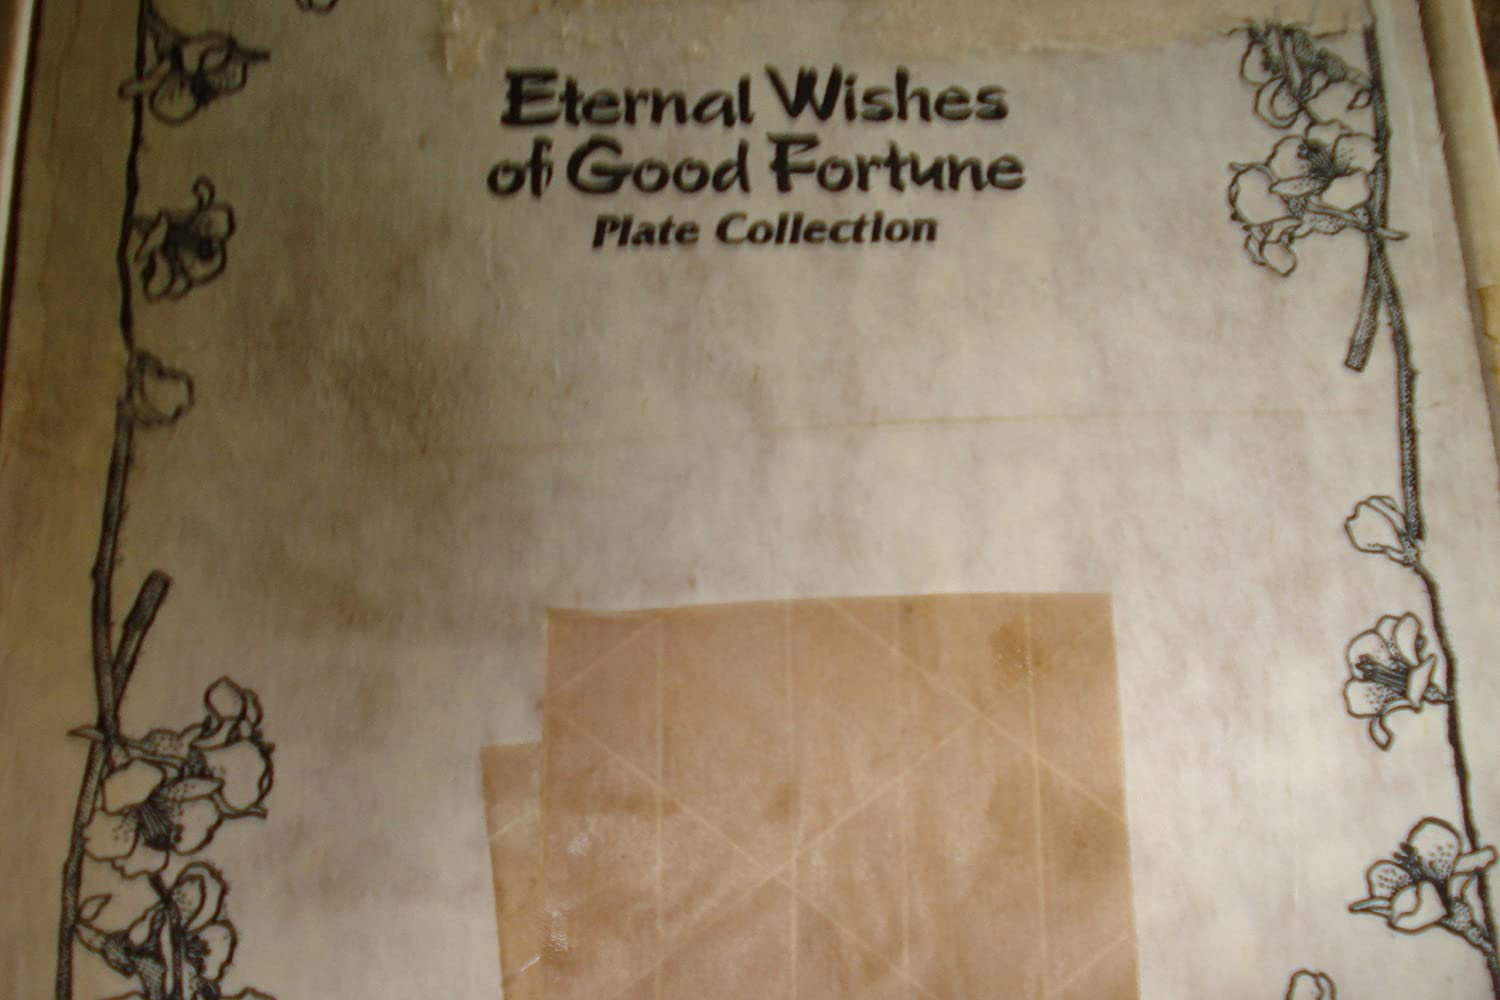 6 INCHES The Hamilton Collection Eternal Wishes of Good Fortune Friendship Collectors Plate